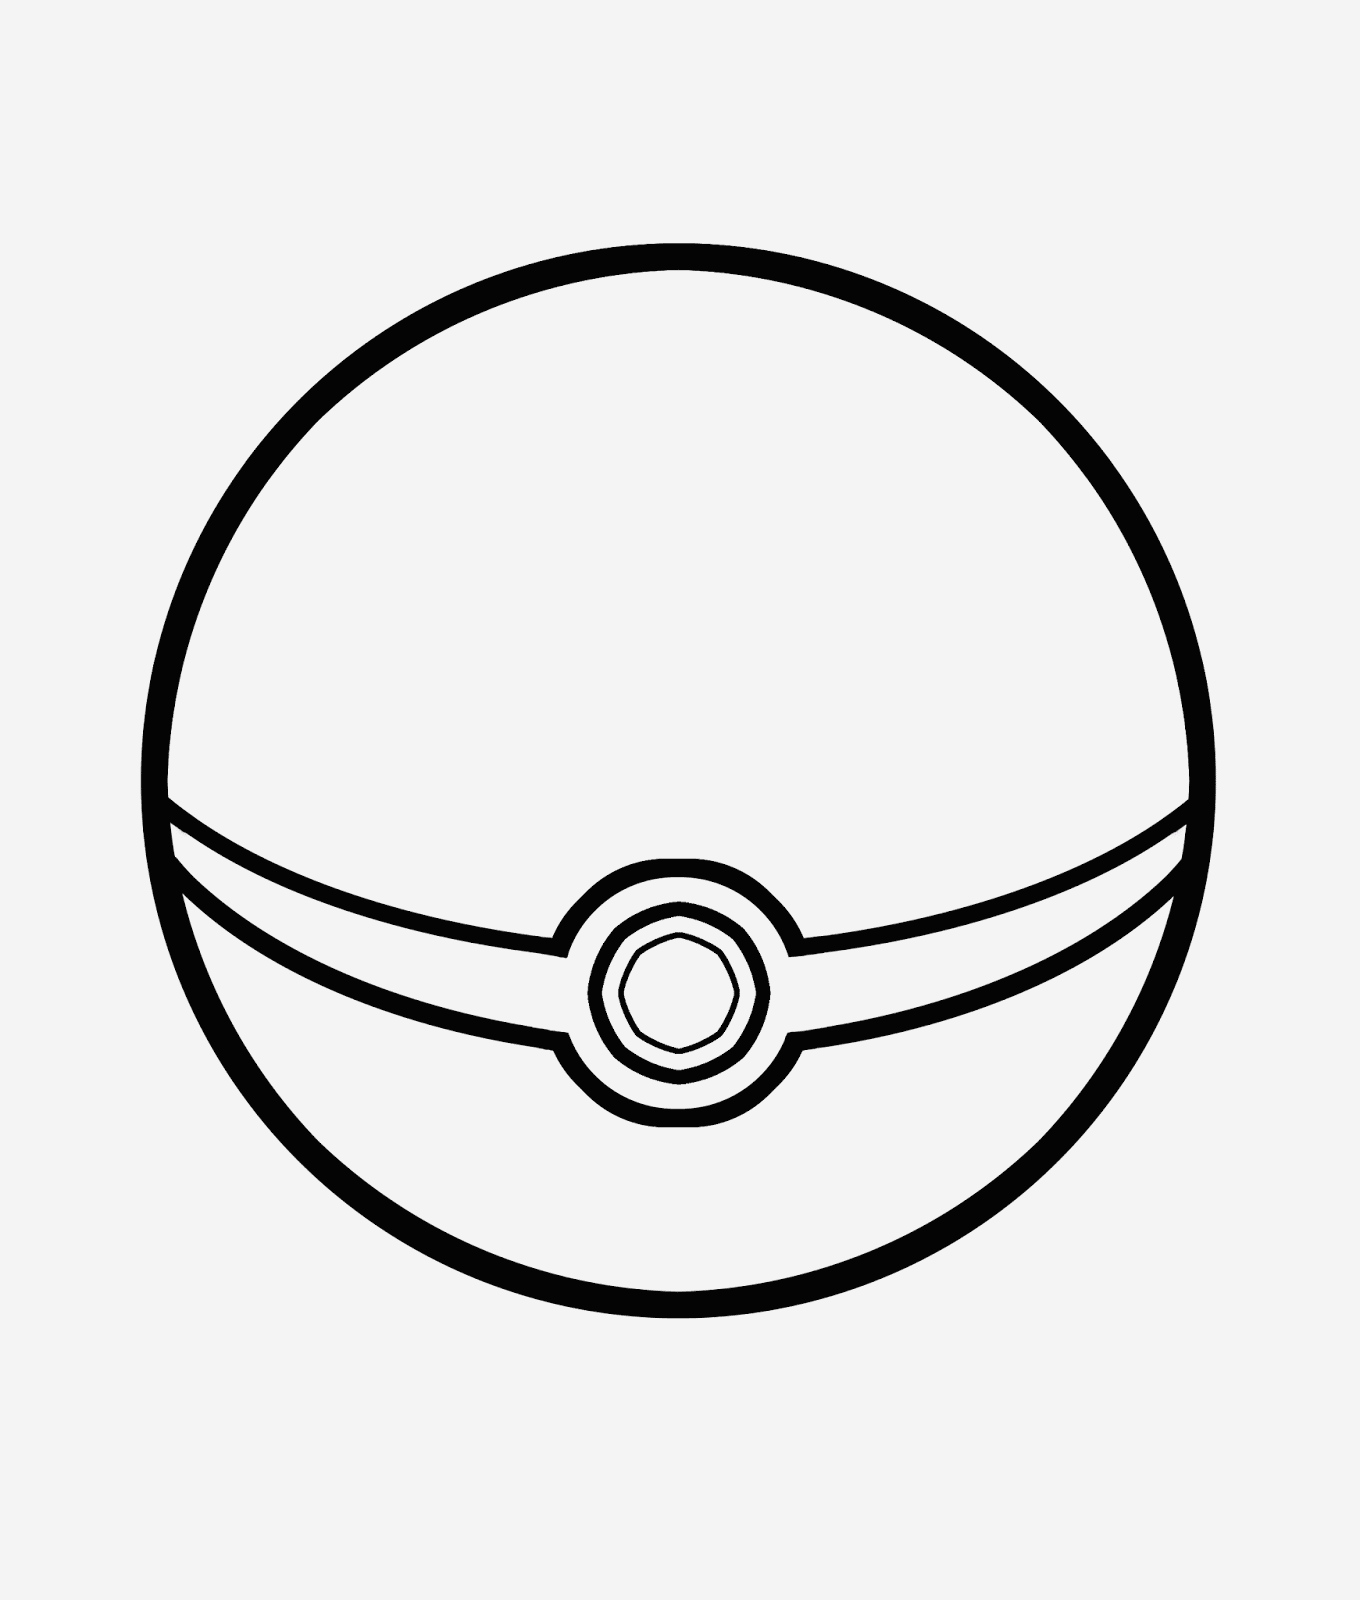 Coloriage Pokemon à Imprimer Beautiful Dessins Et Coloriages Page De Coloriage Grand format